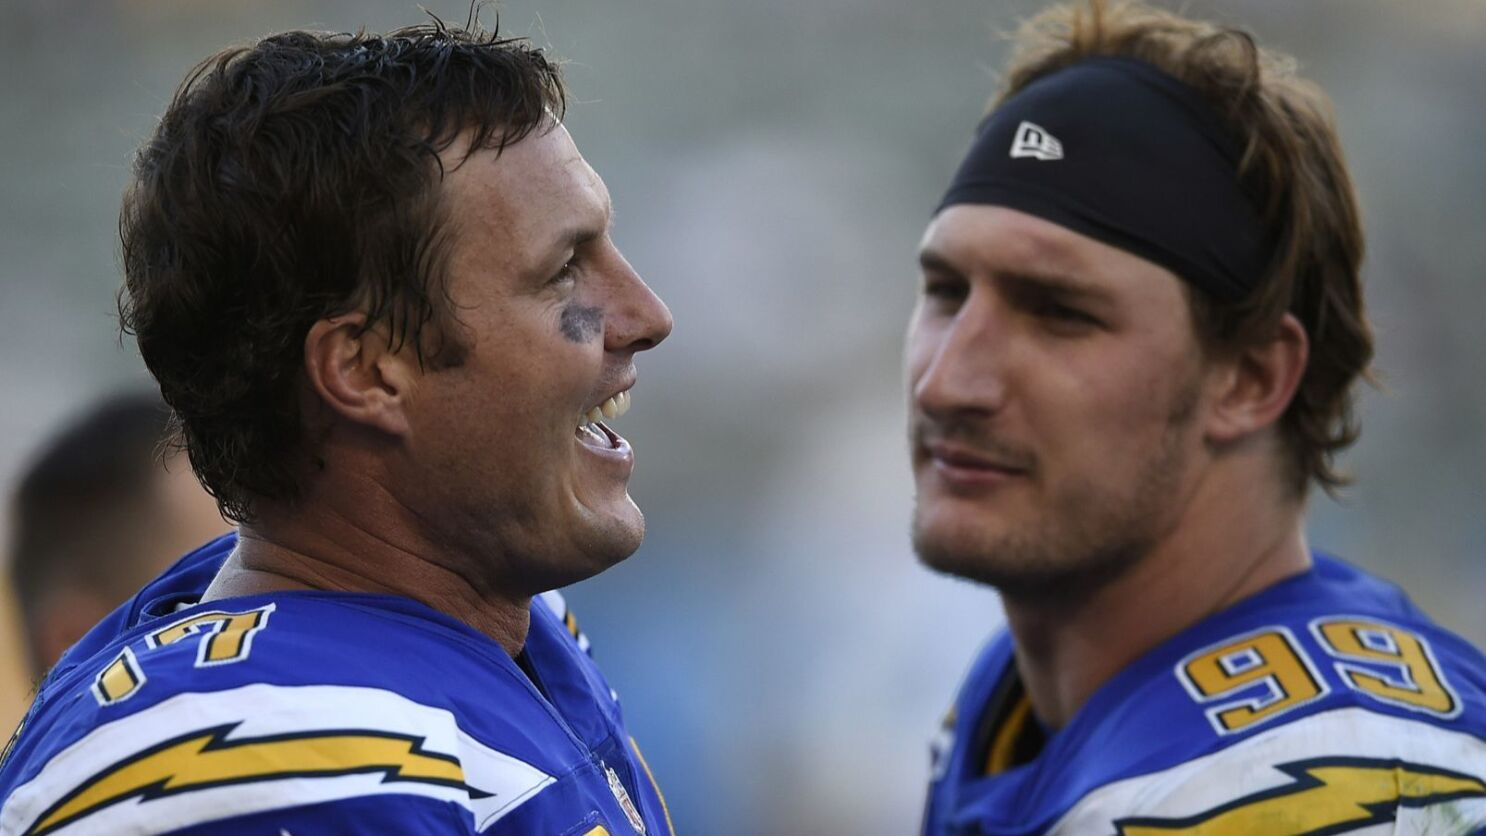 a6afc900 Column: Chargers bungled things with Gordon, but not reaching ...